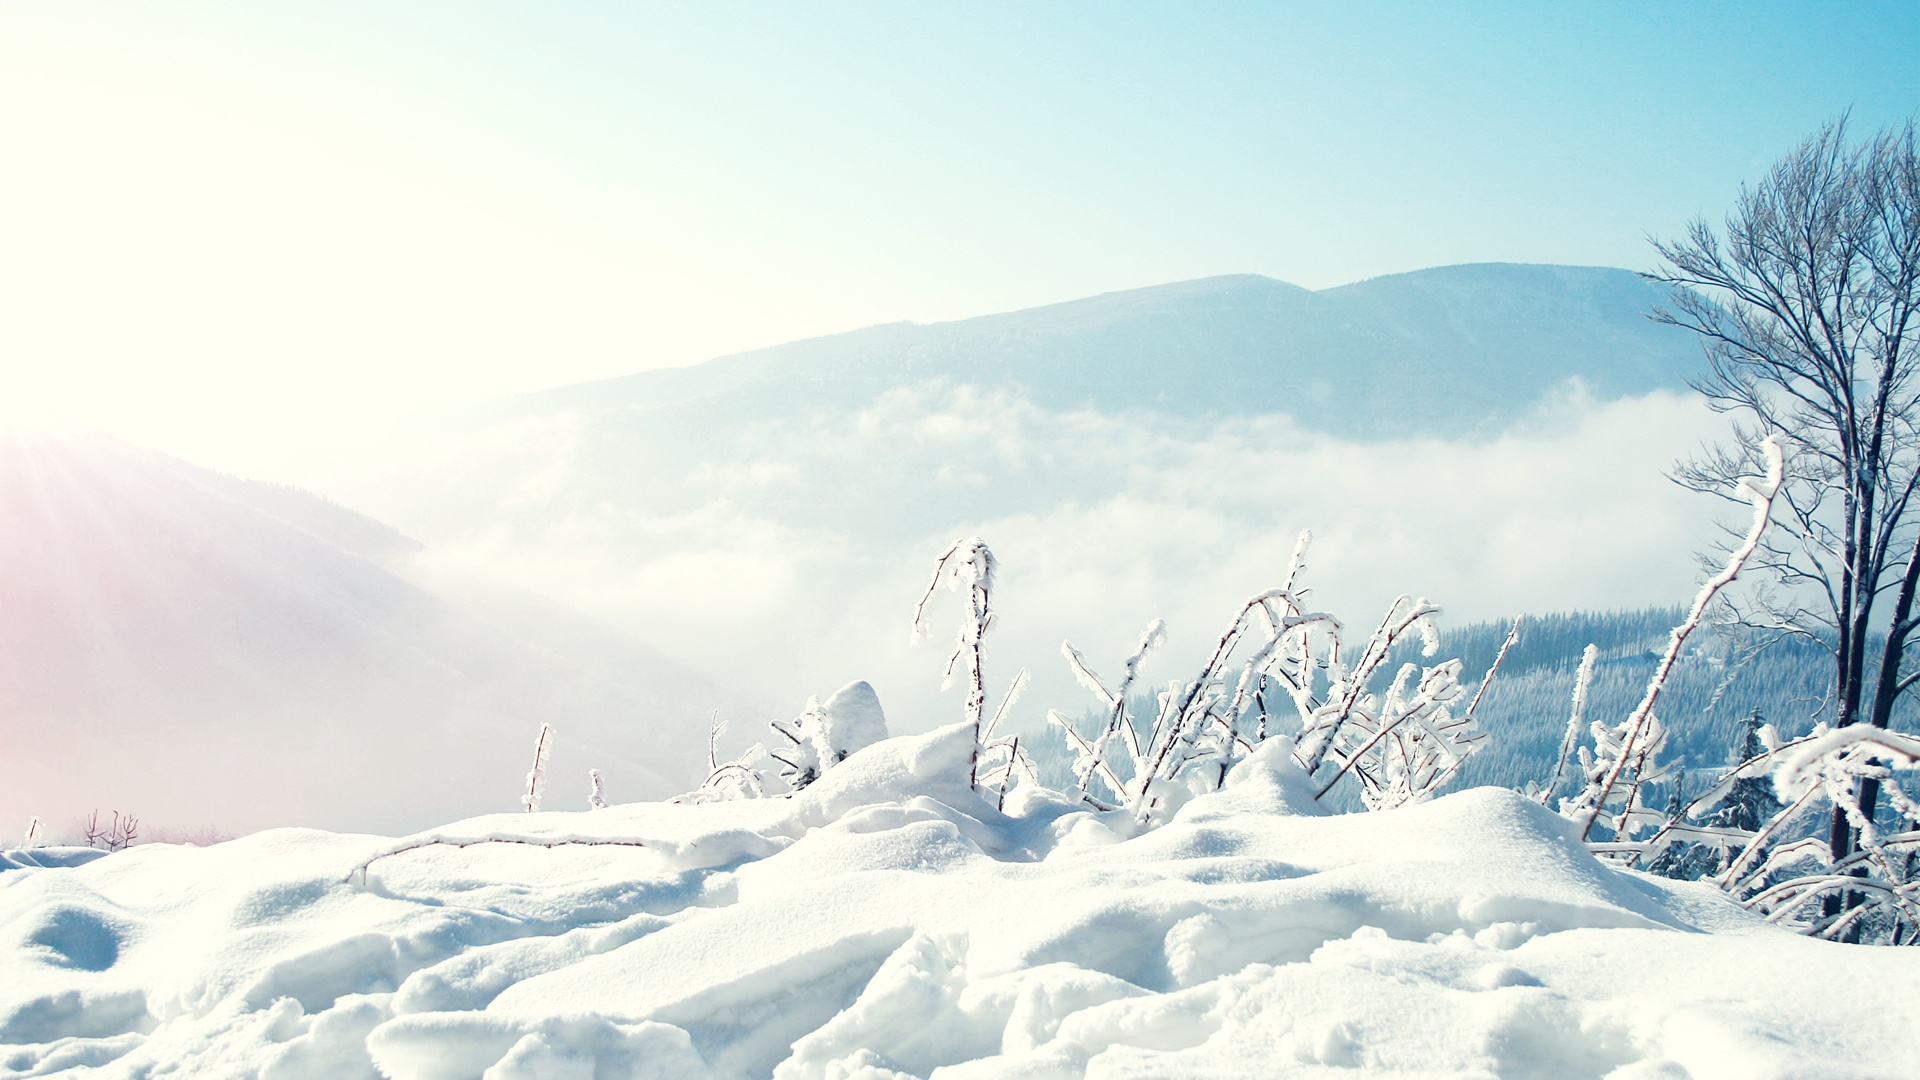 Snow Winter Mountains Wallpapers HD Wallpapers 1920x1080